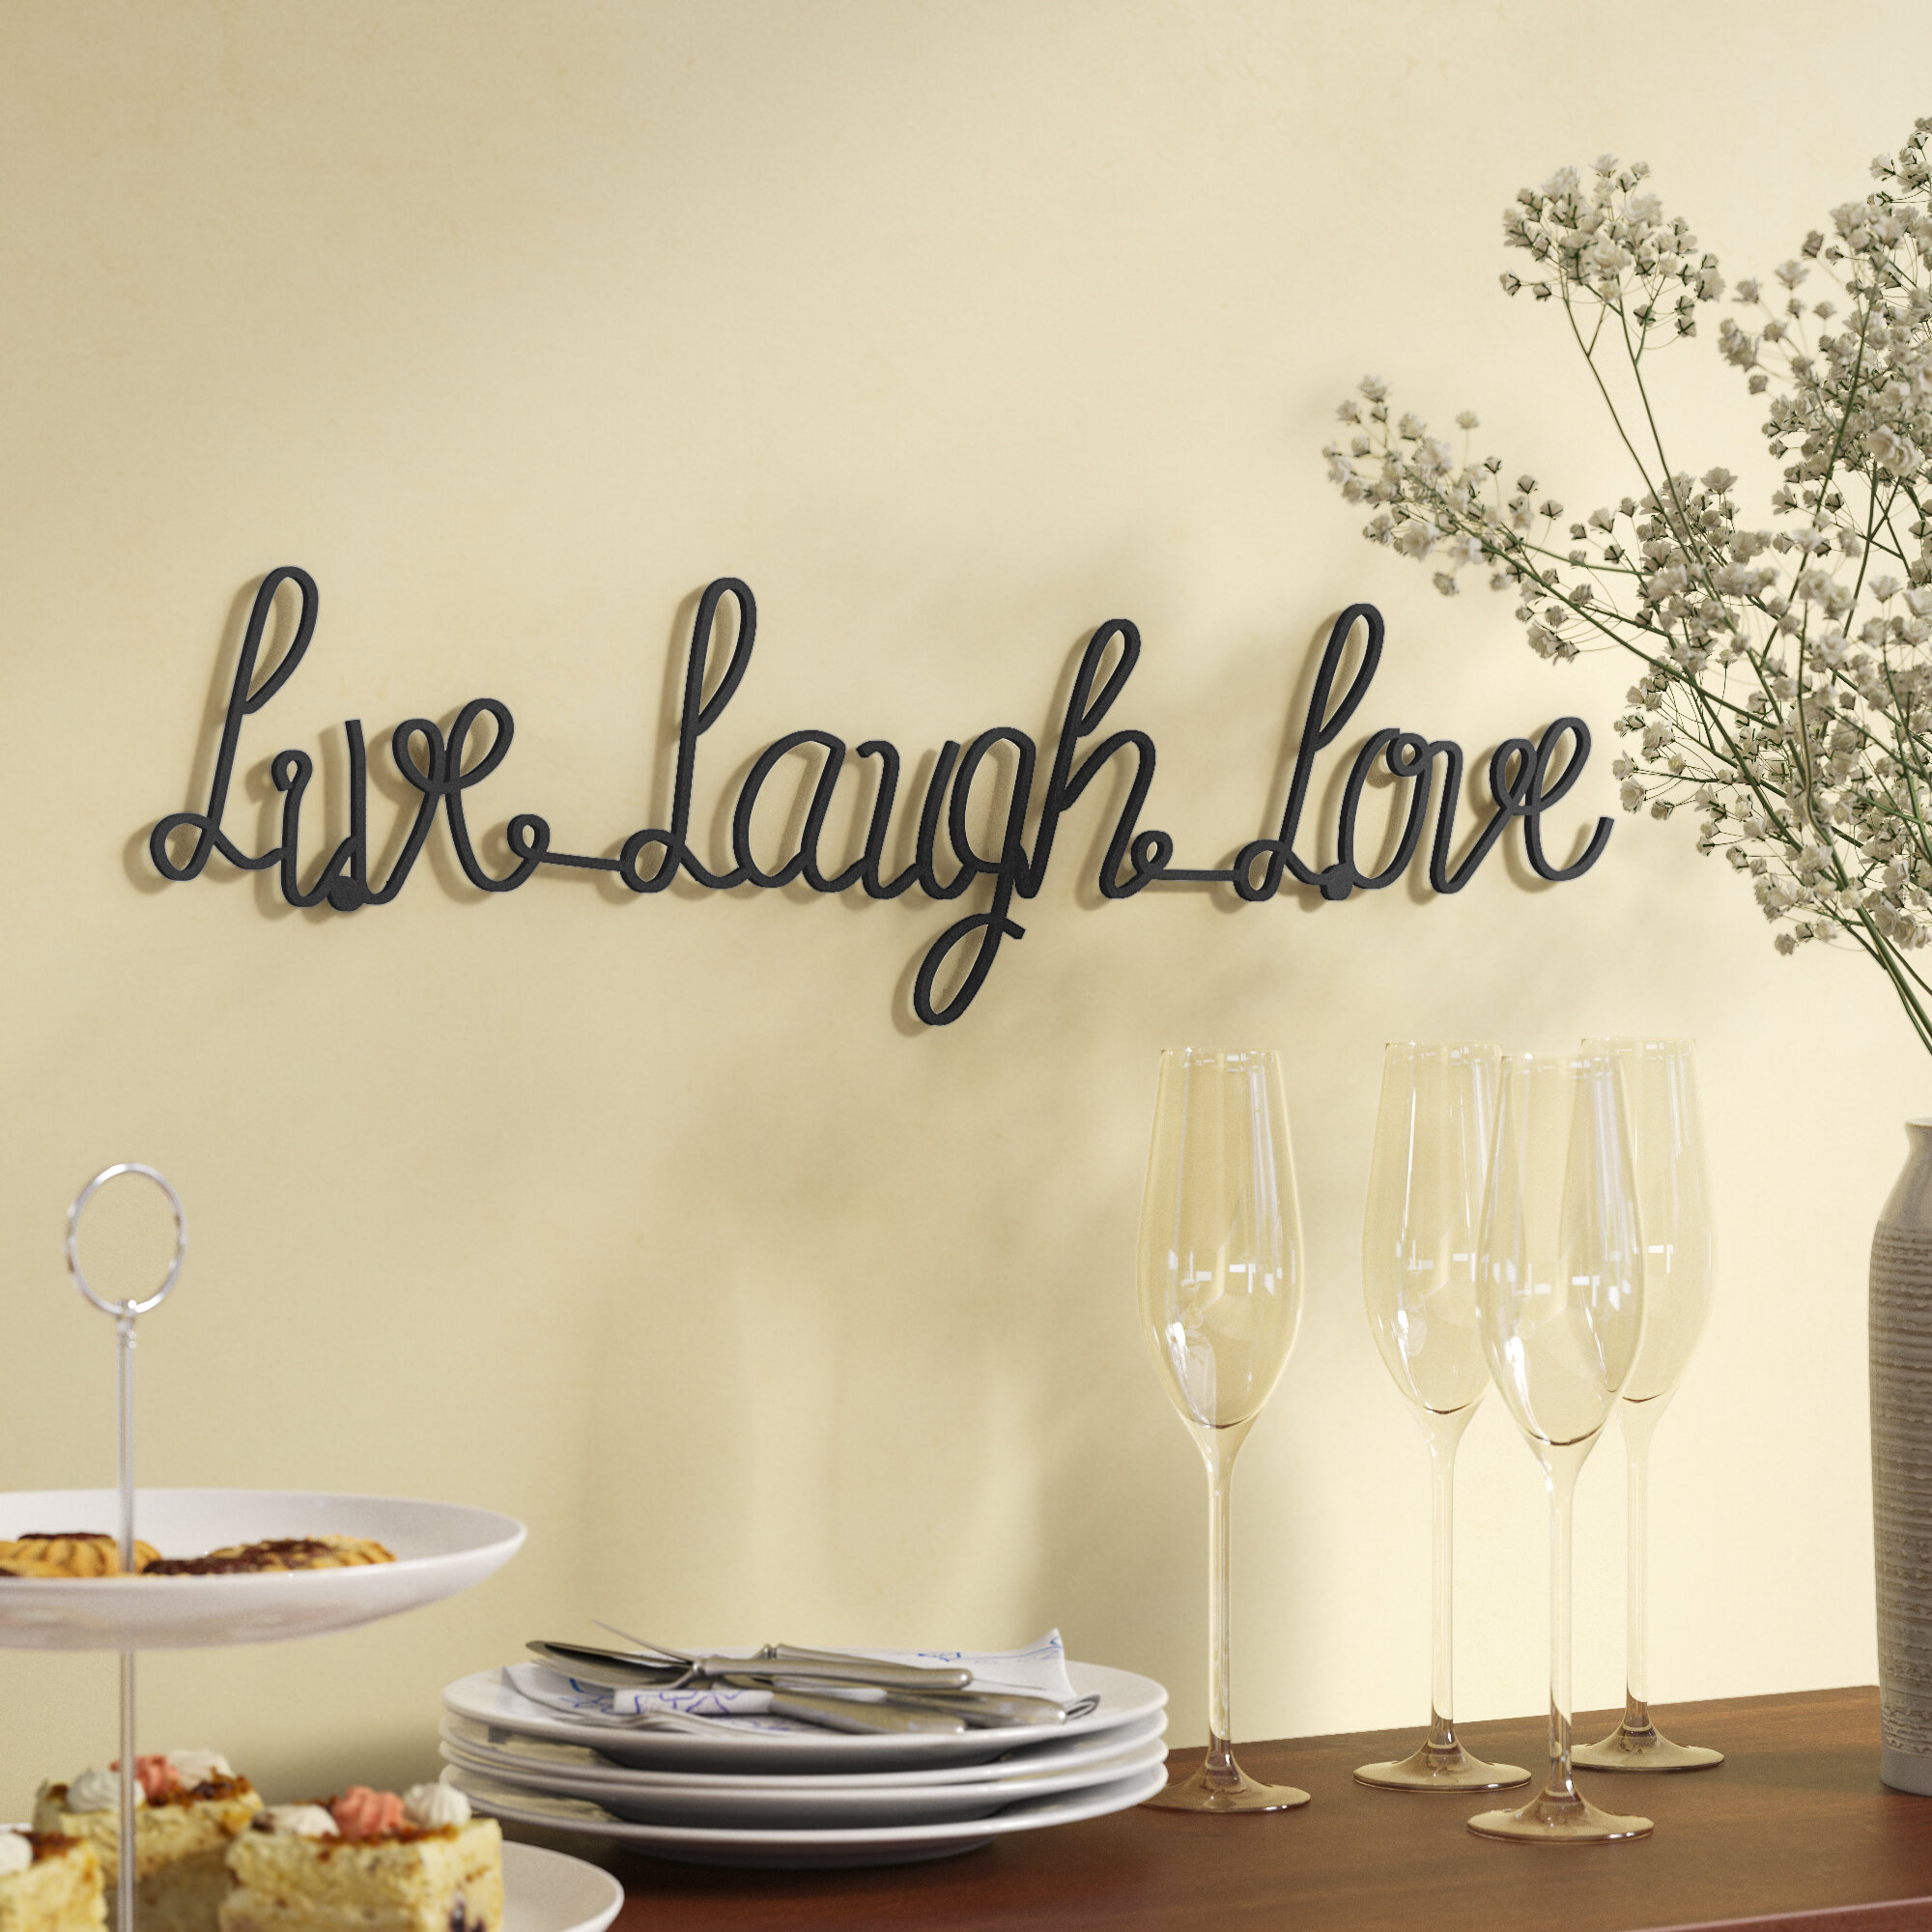 Current Metal Laundry Room Wall Decor By Winston Porter With Live Laugh Love Metal Wall Décor (Gallery 20 of 20)